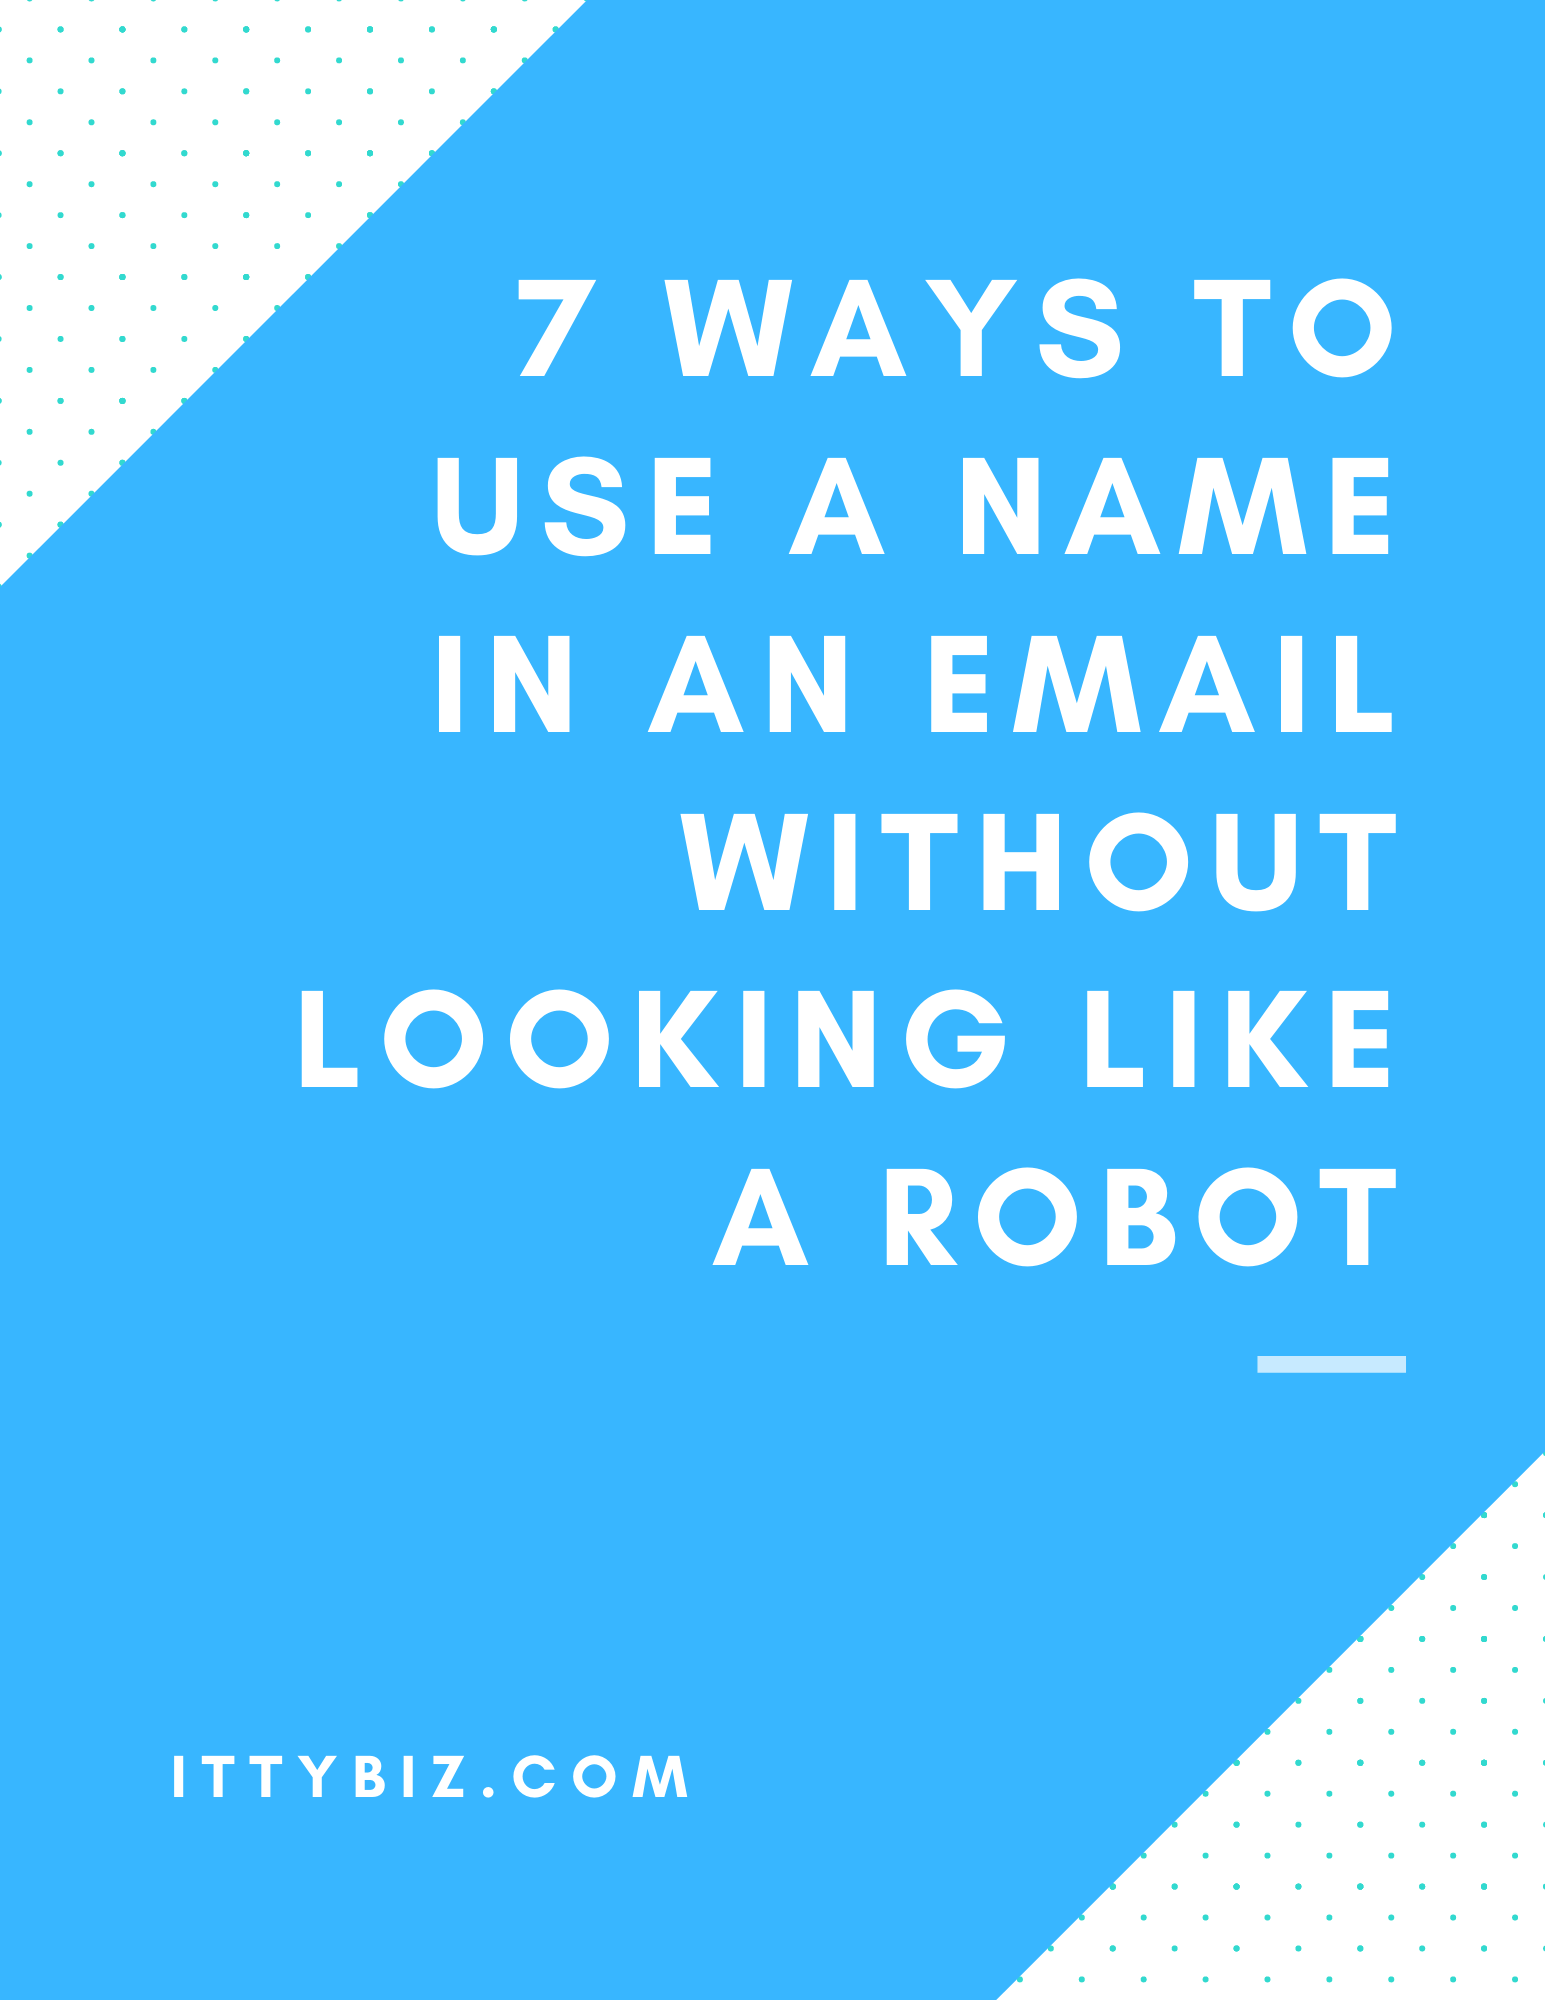 7 Ways To Use A Name In An Email Without Looking Like A Robot